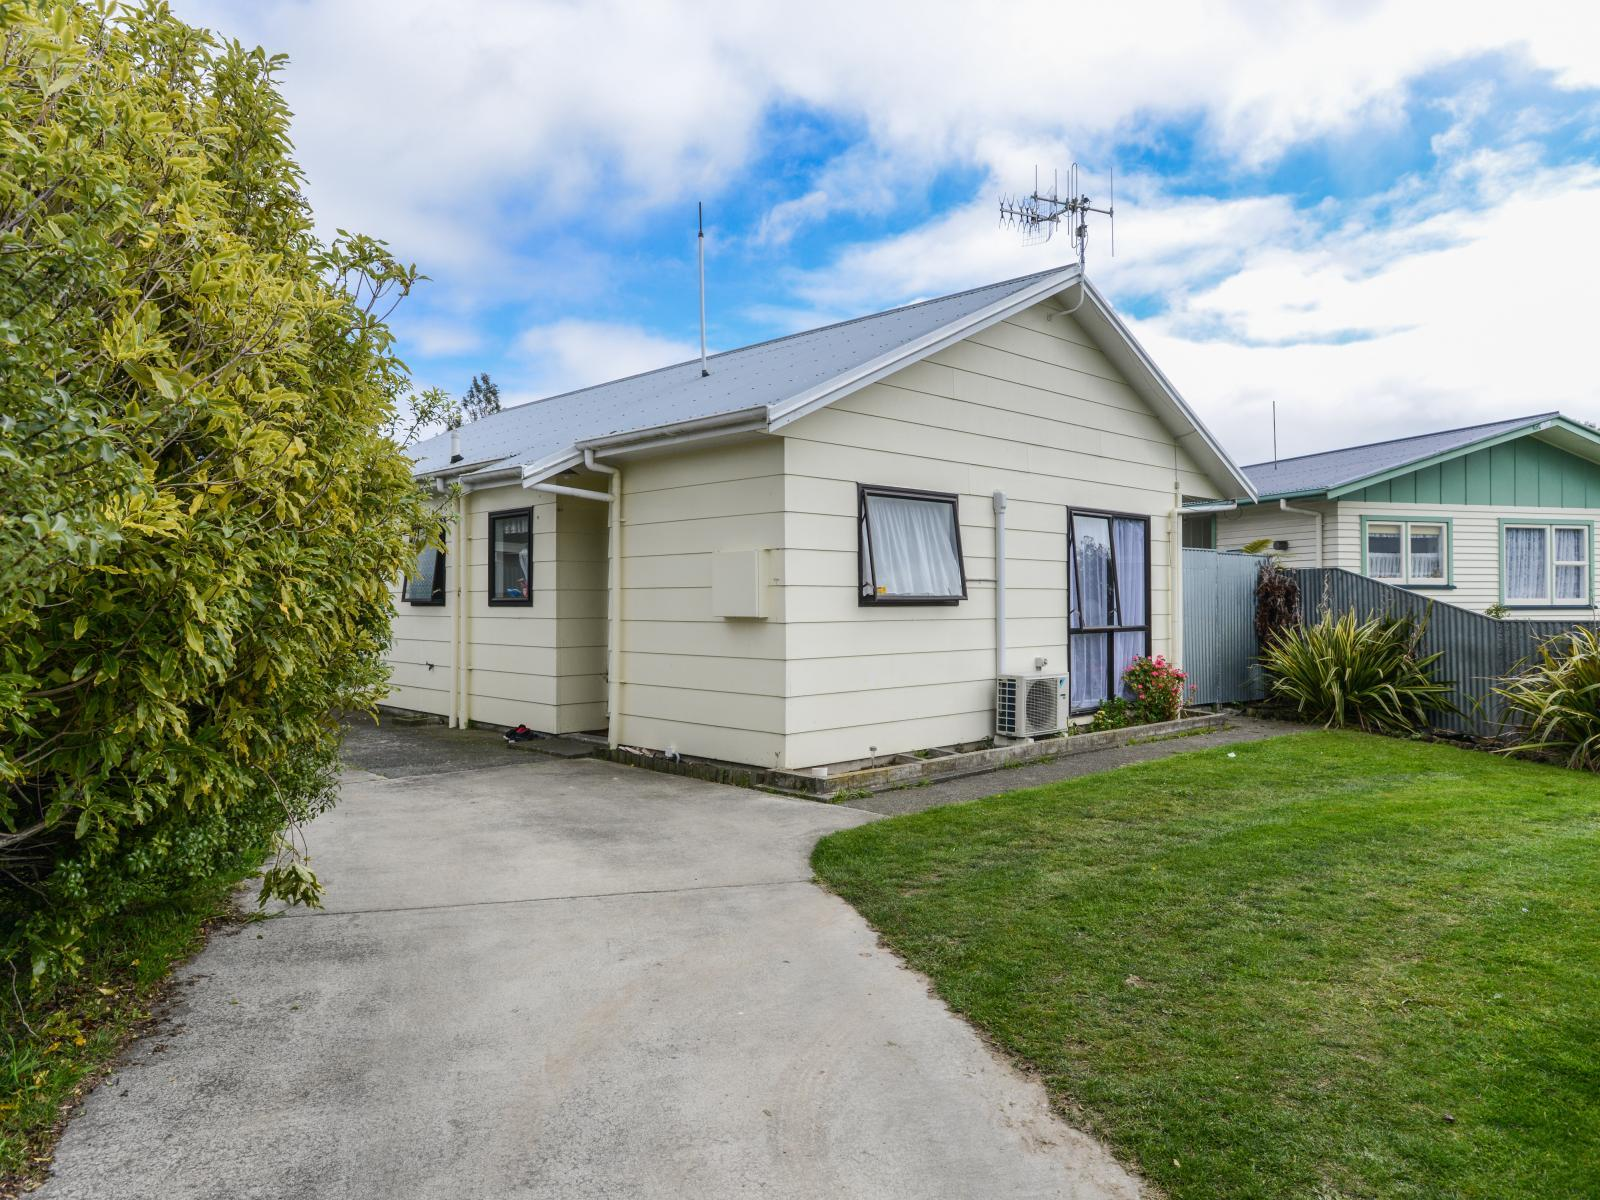 69A Riverbend Road, Onekawa